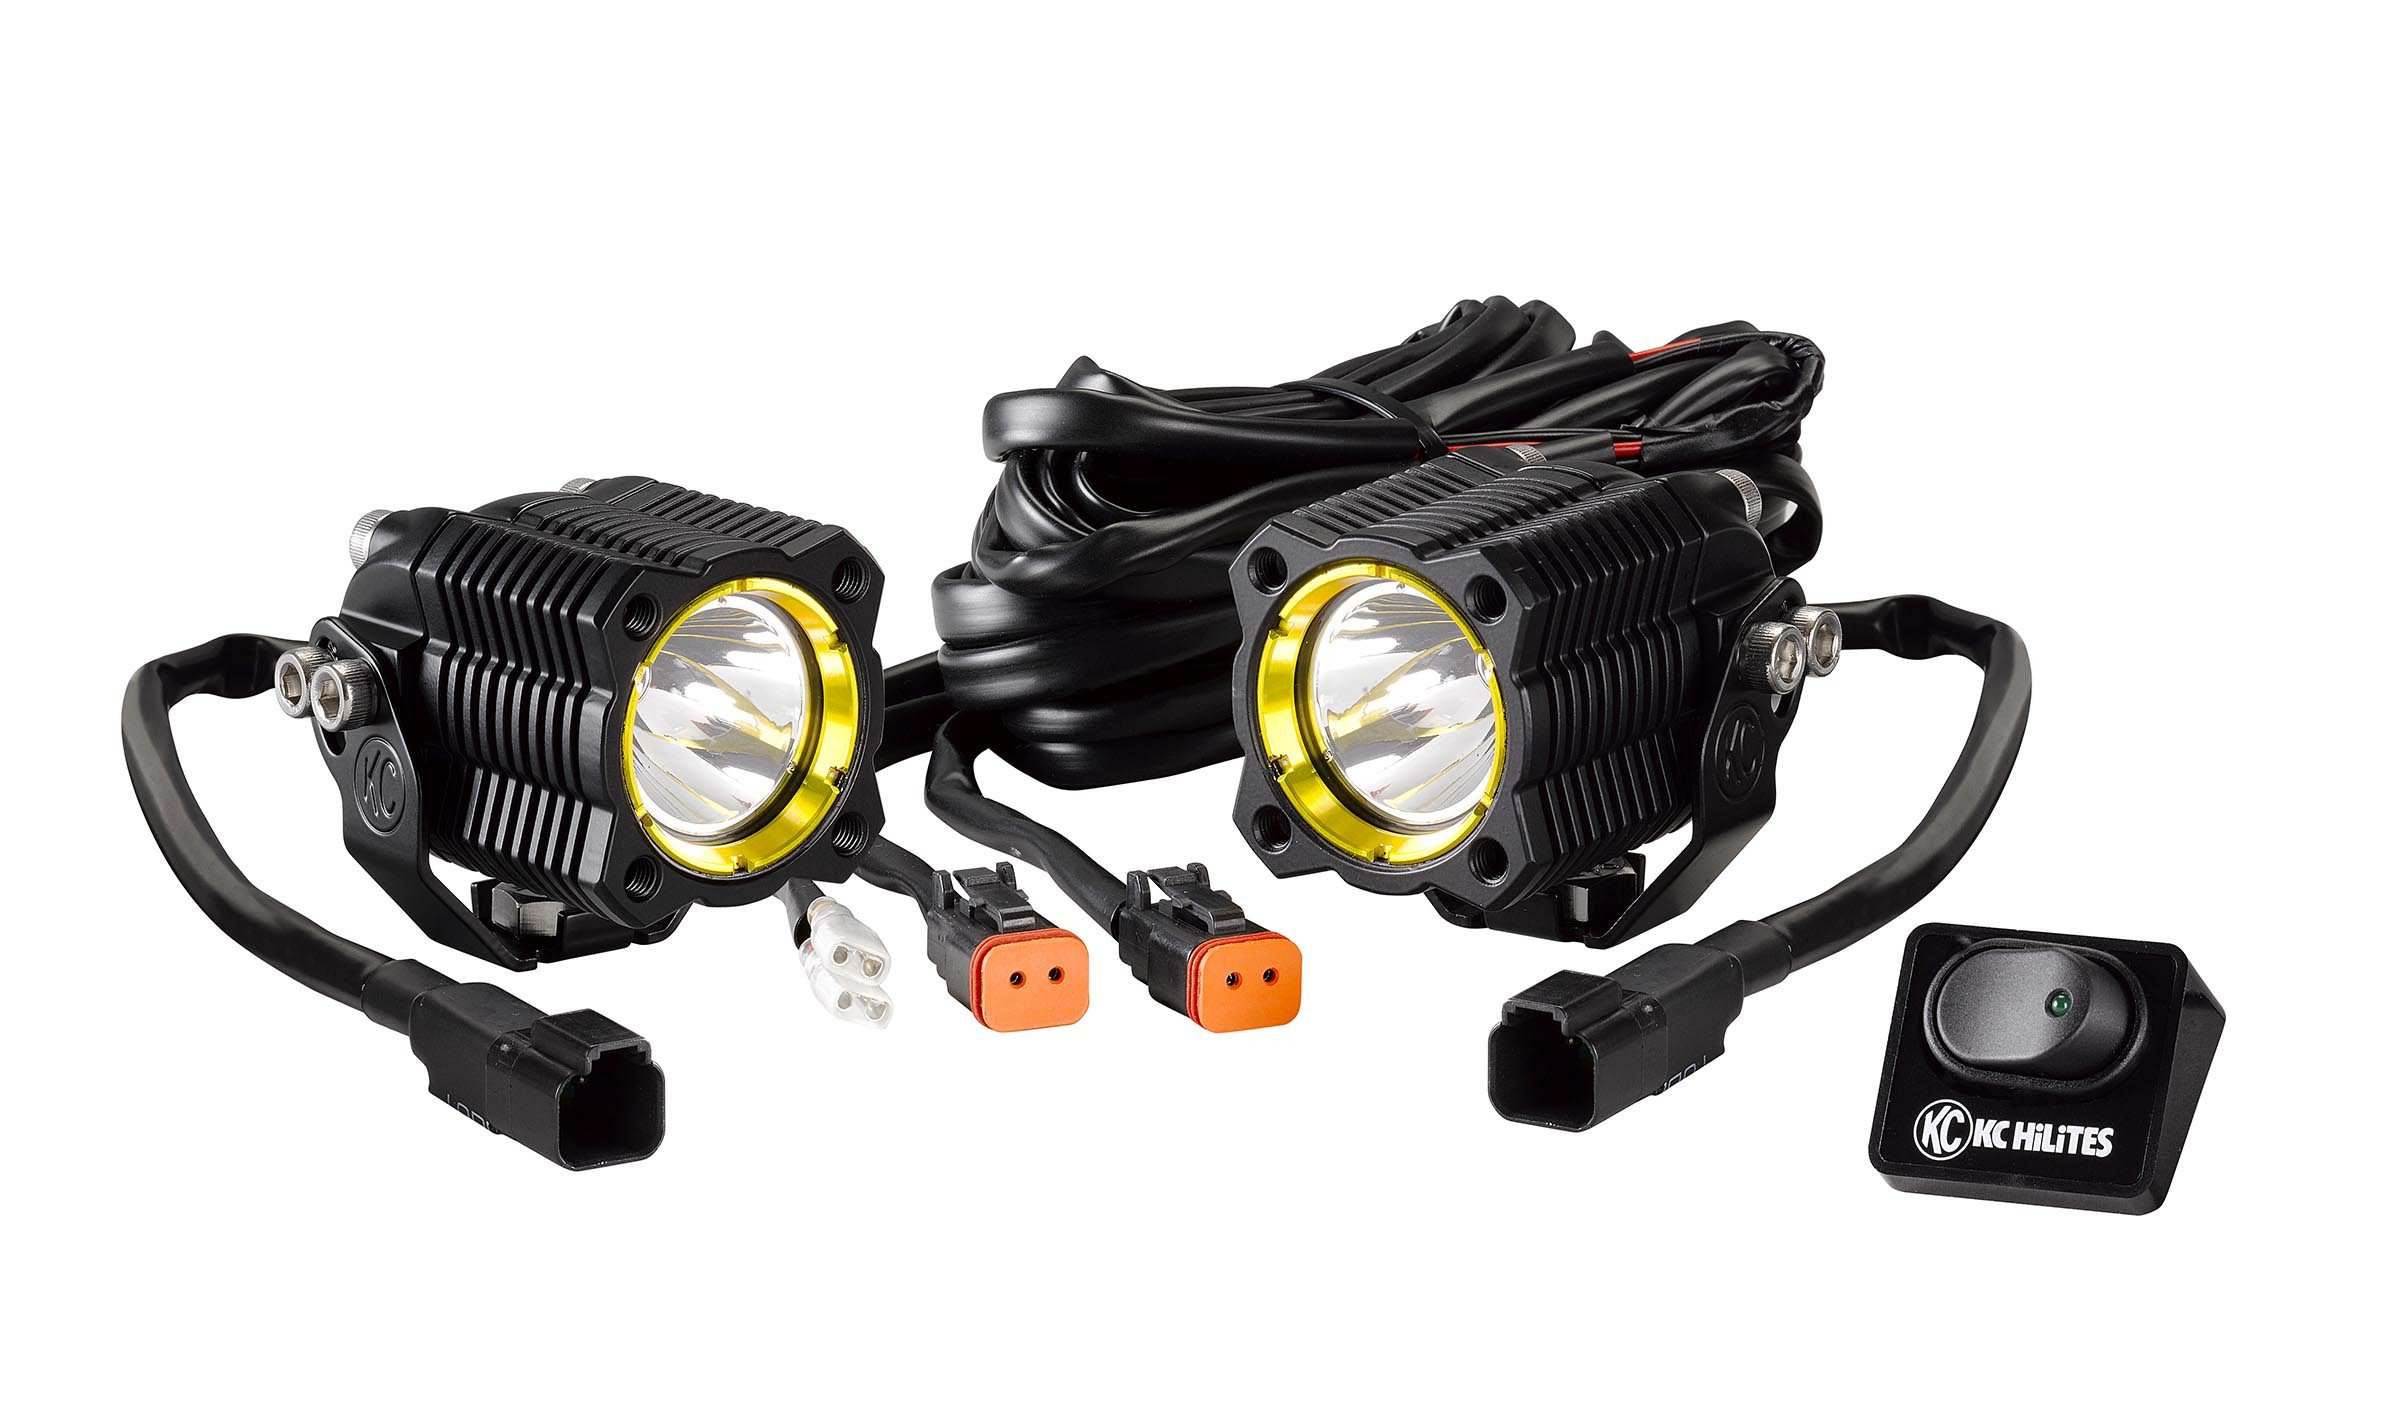 Image of Kc Hilites 10W Flex Led Spread Beam Single Pair Light Pack System Kit